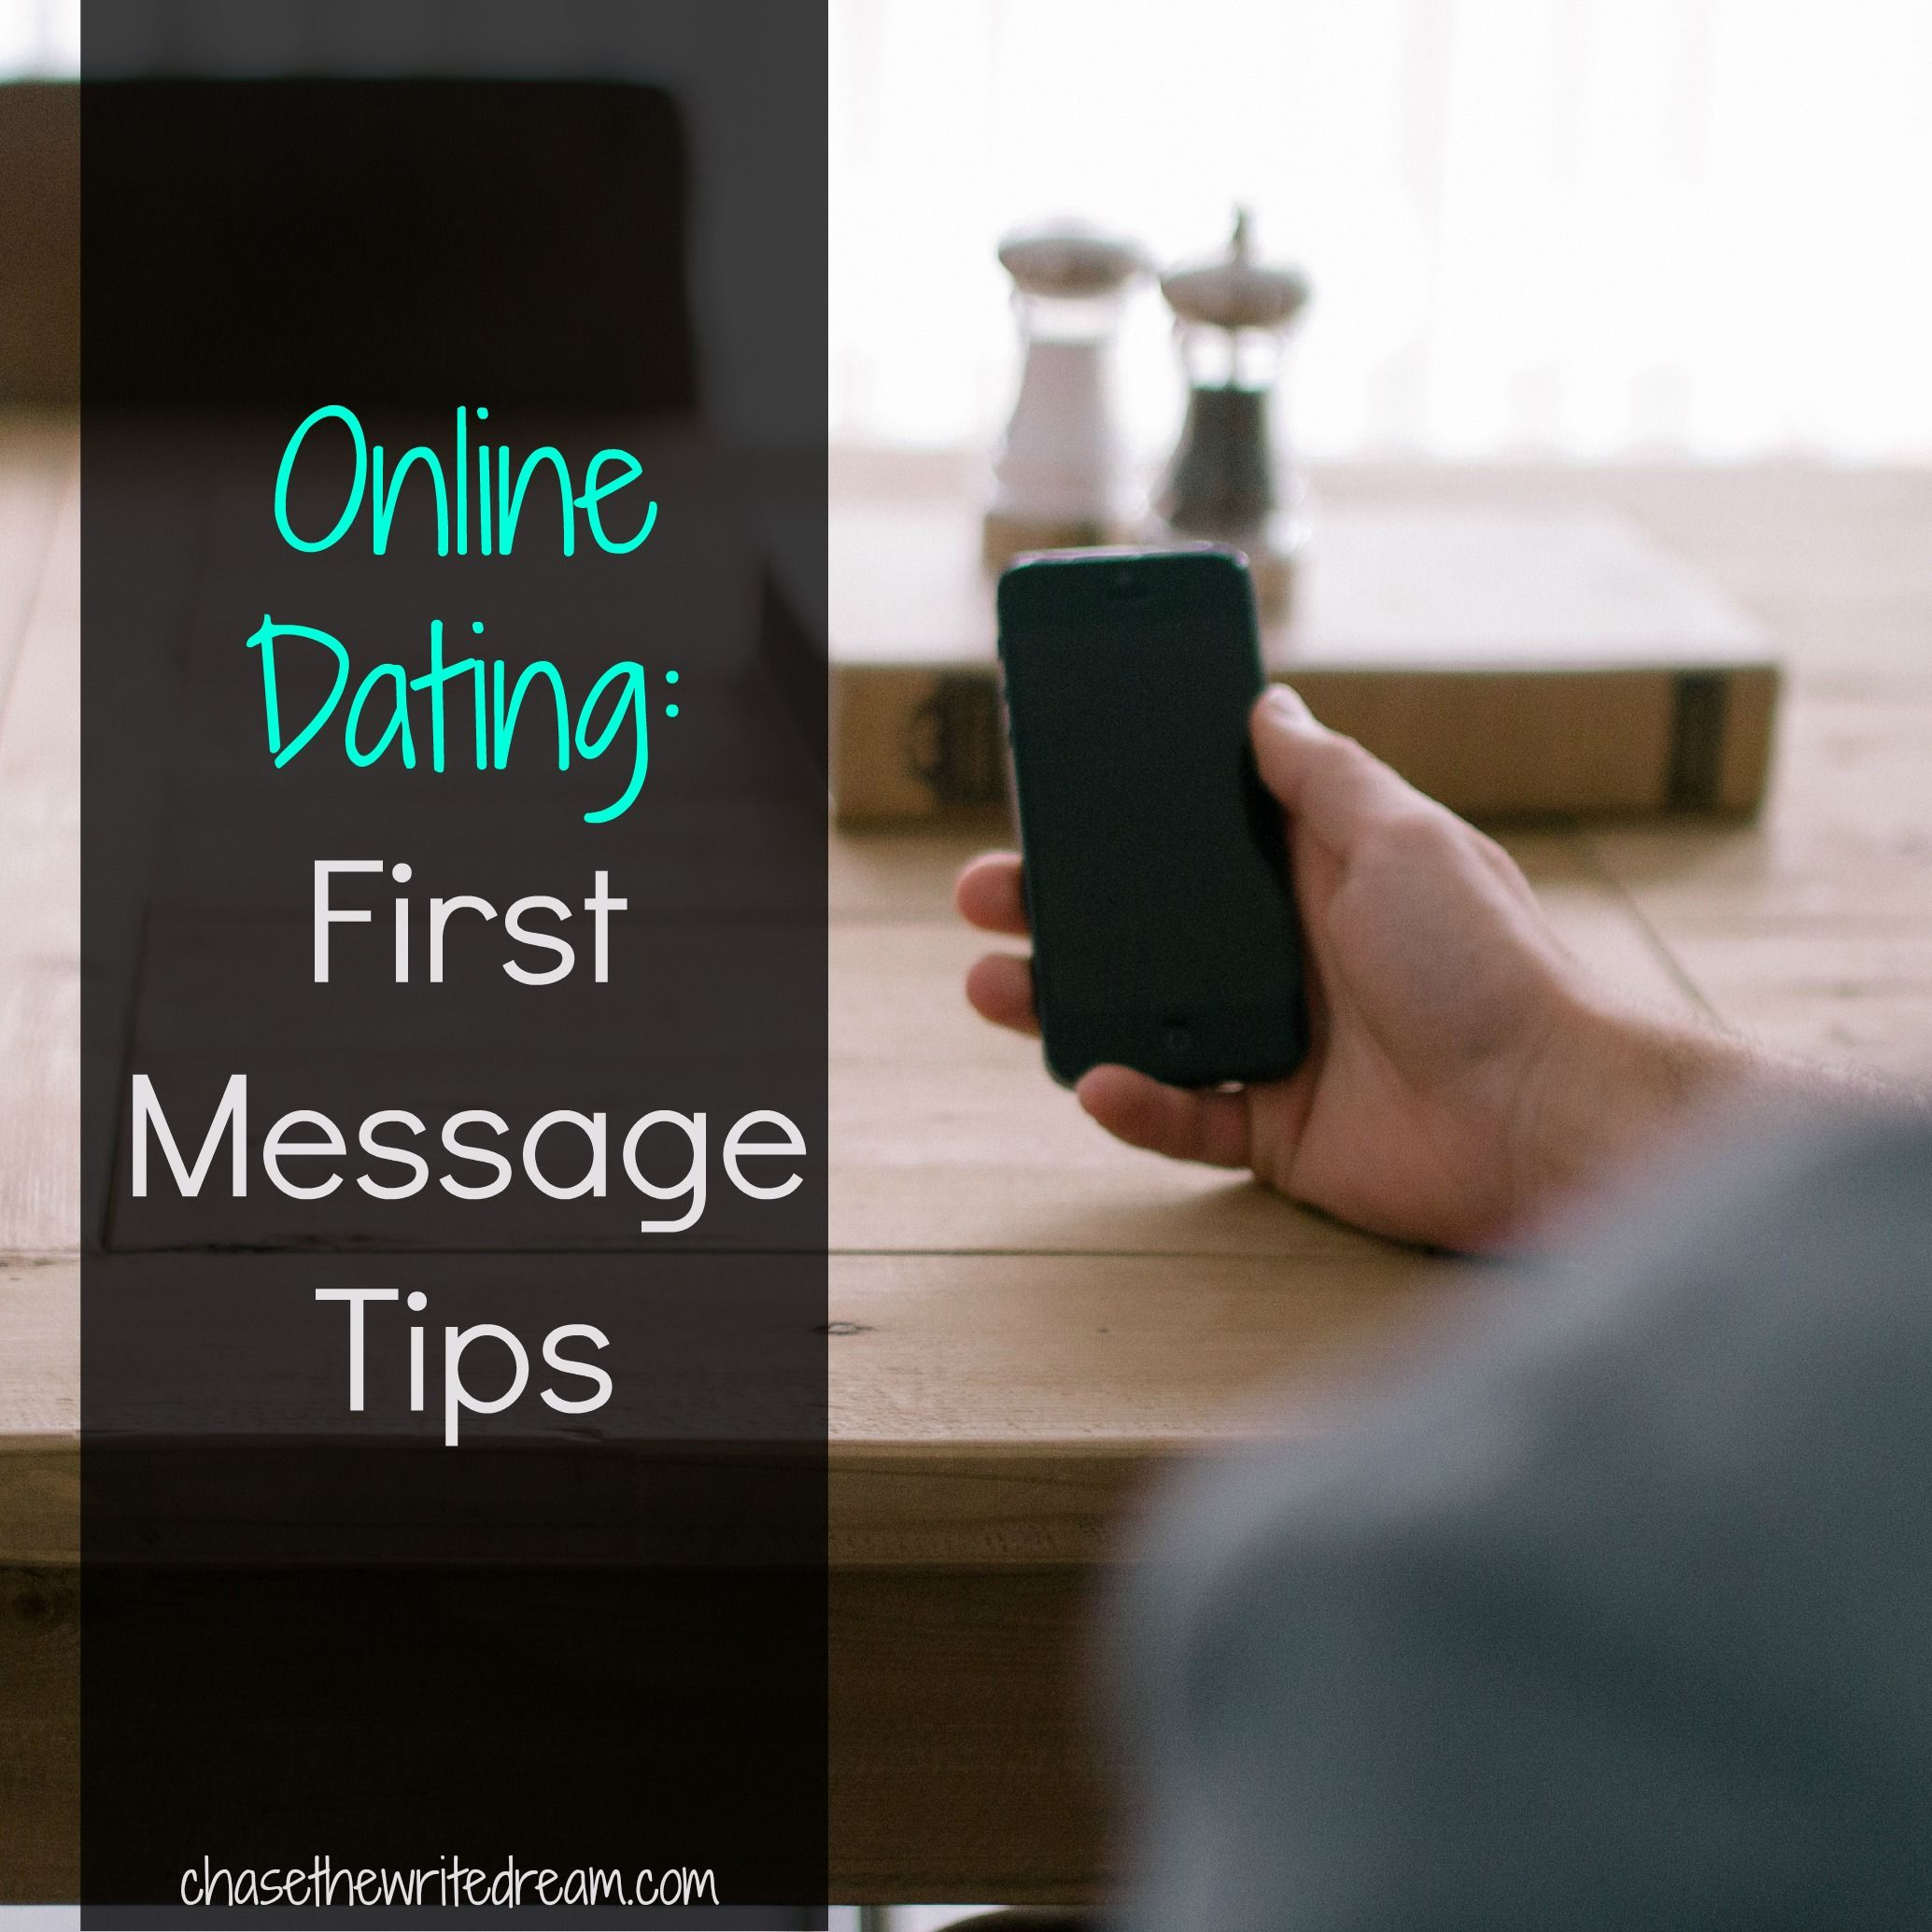 Message ideas when little online dating info